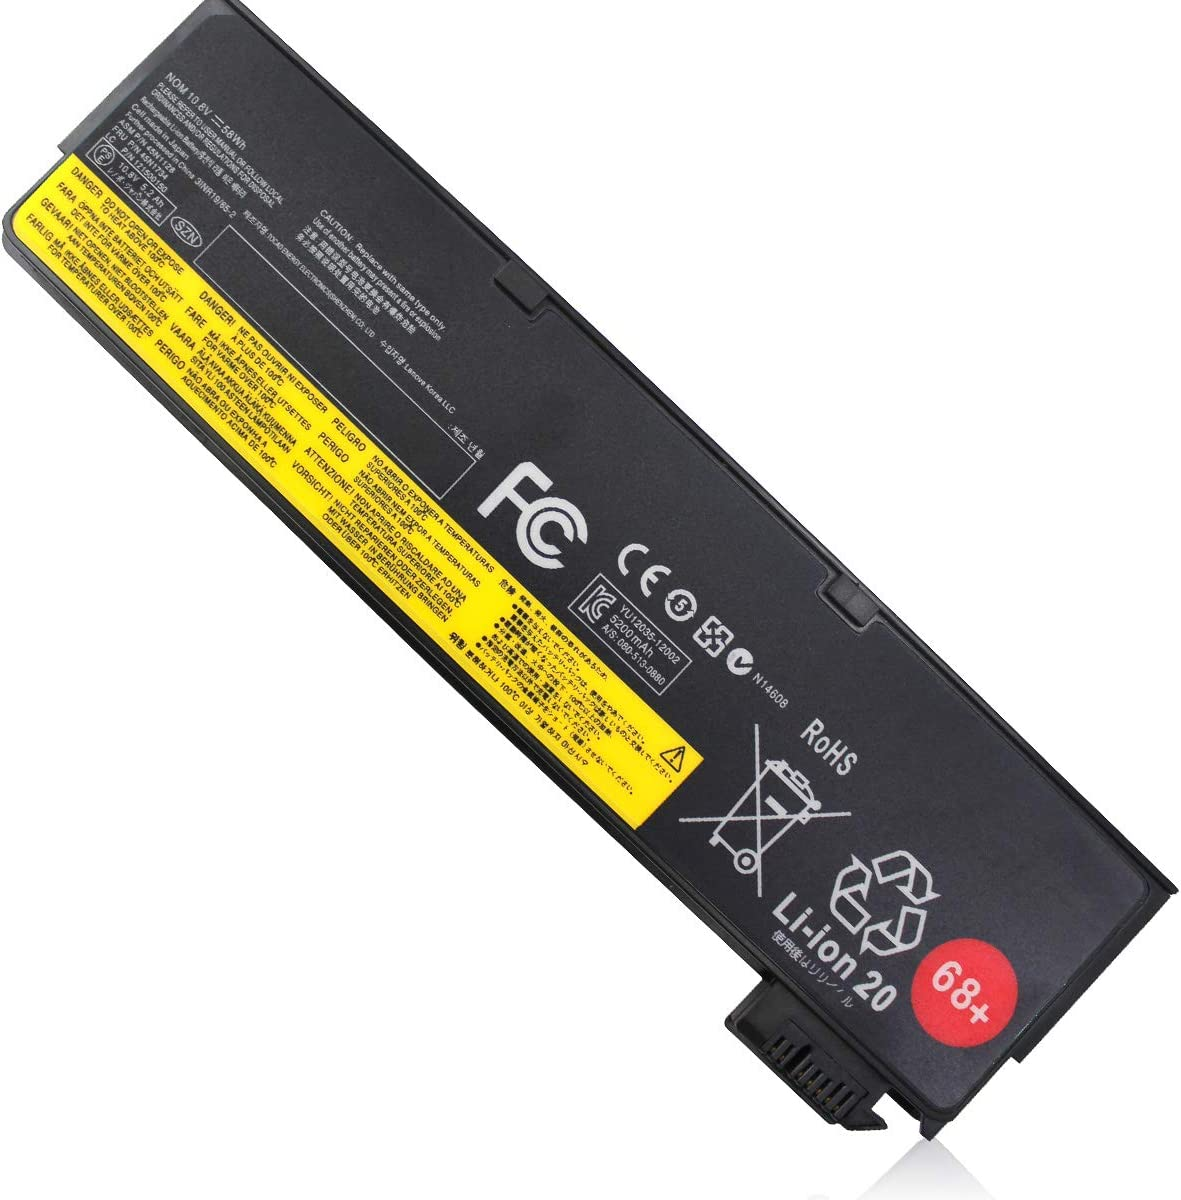 X240 6Cell 68+ (0C52862) Battery Compatible with Lenovo T440 T440s T450 T450s T460 T460p T550 T560 W550s X250 X260 X270 45N1124 45N1125 45N1128 45N1127